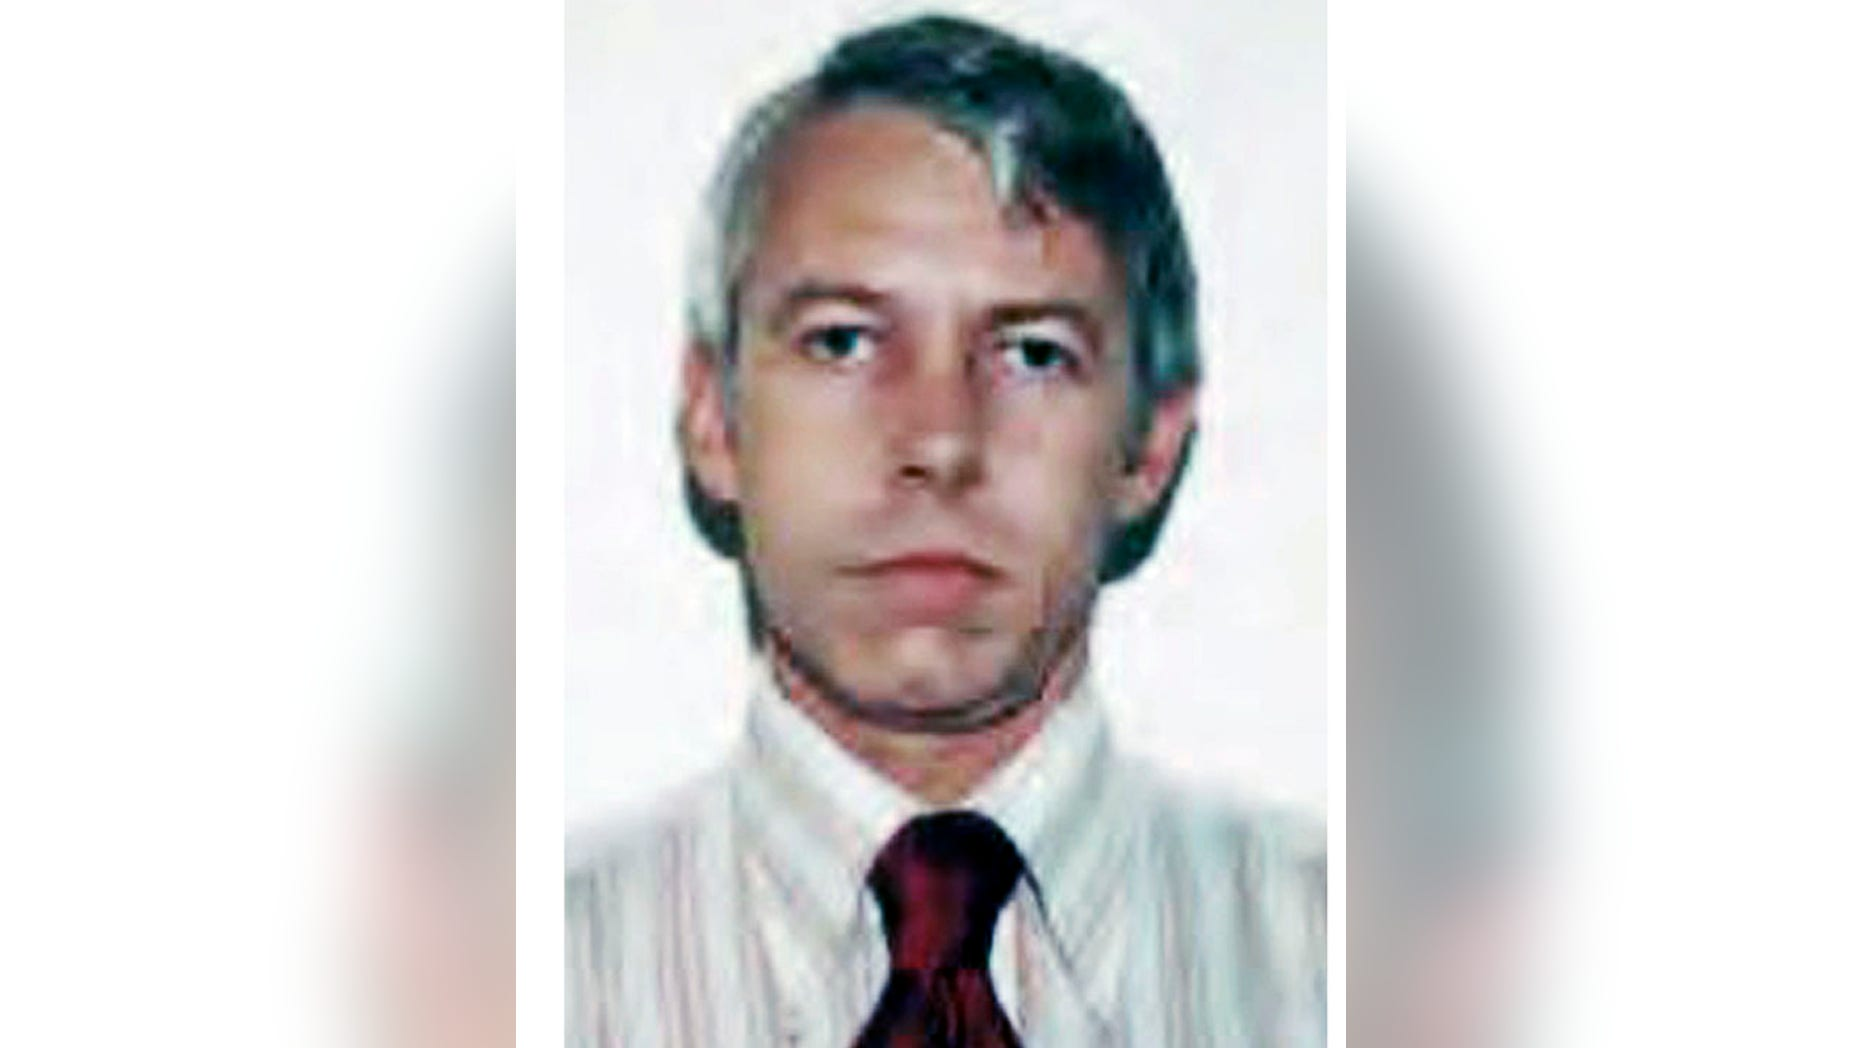 Dr. Richard Strauss worked at Ohio State University for 20 years. He committed suicide in 2005.